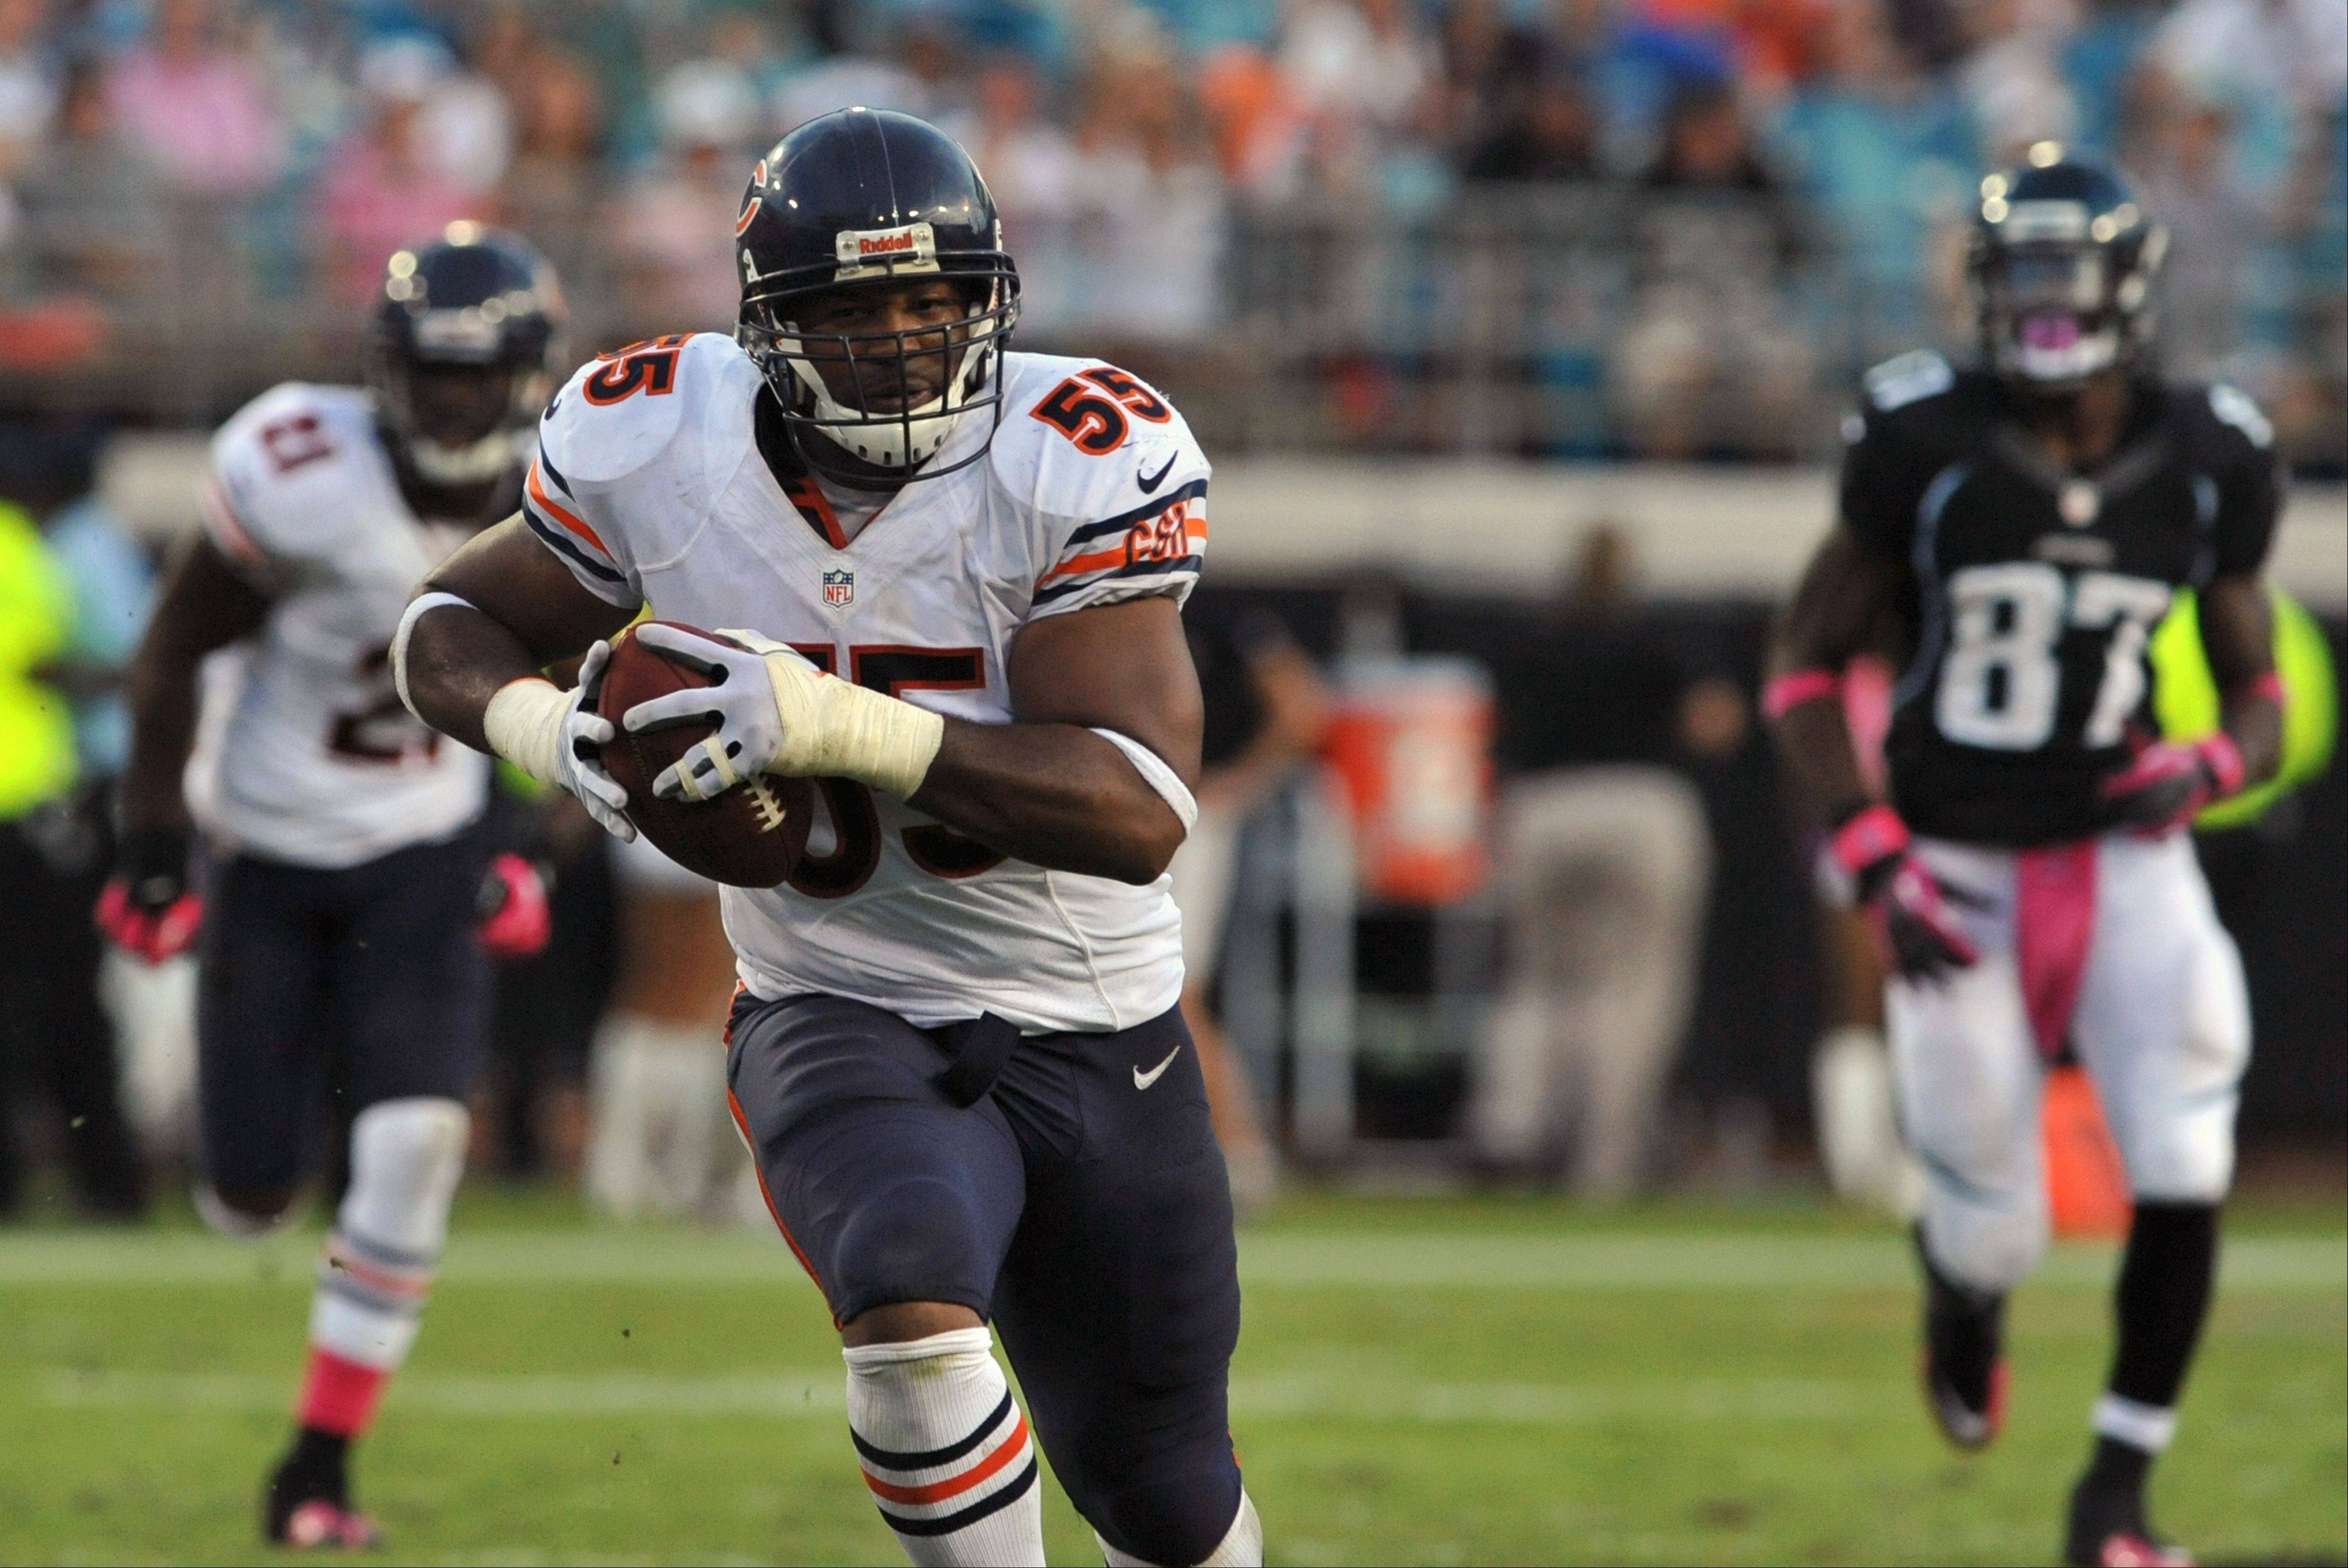 Defensively offense the way Smith, Bears like it